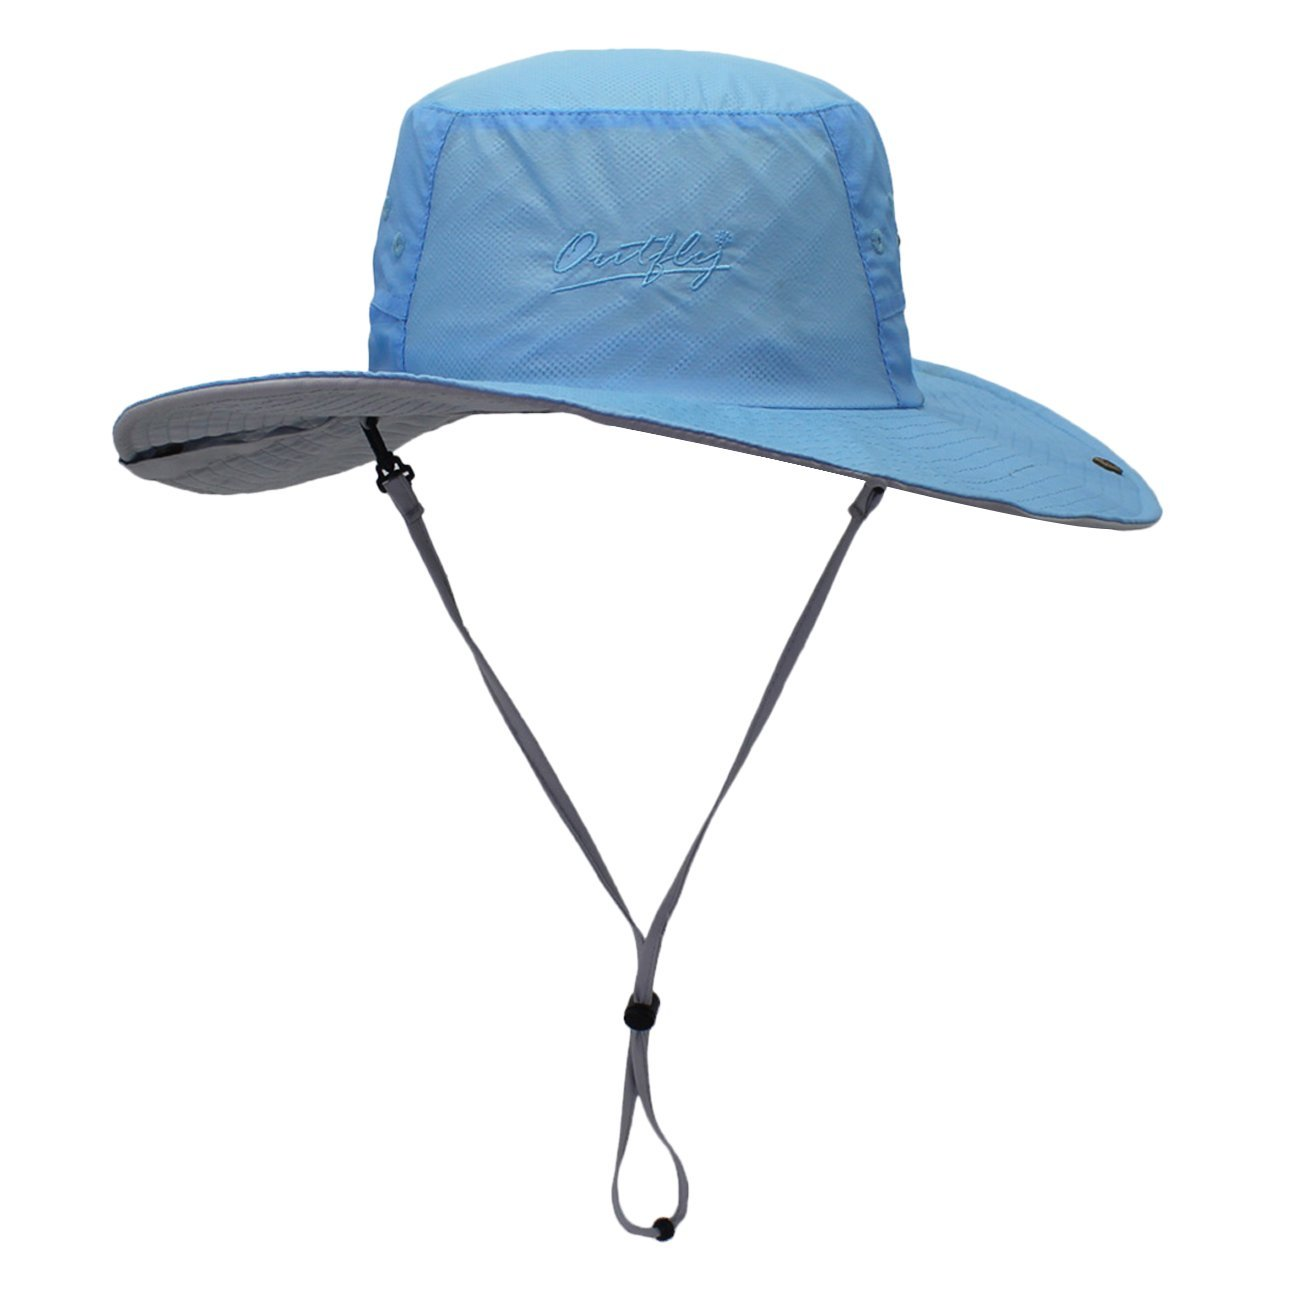 f62a4b8754f49 Get Quotations · Connectyle Mens Wide Brim Fishing Sun Hat Summer Outdoor  Sun Protection Boonie Hat